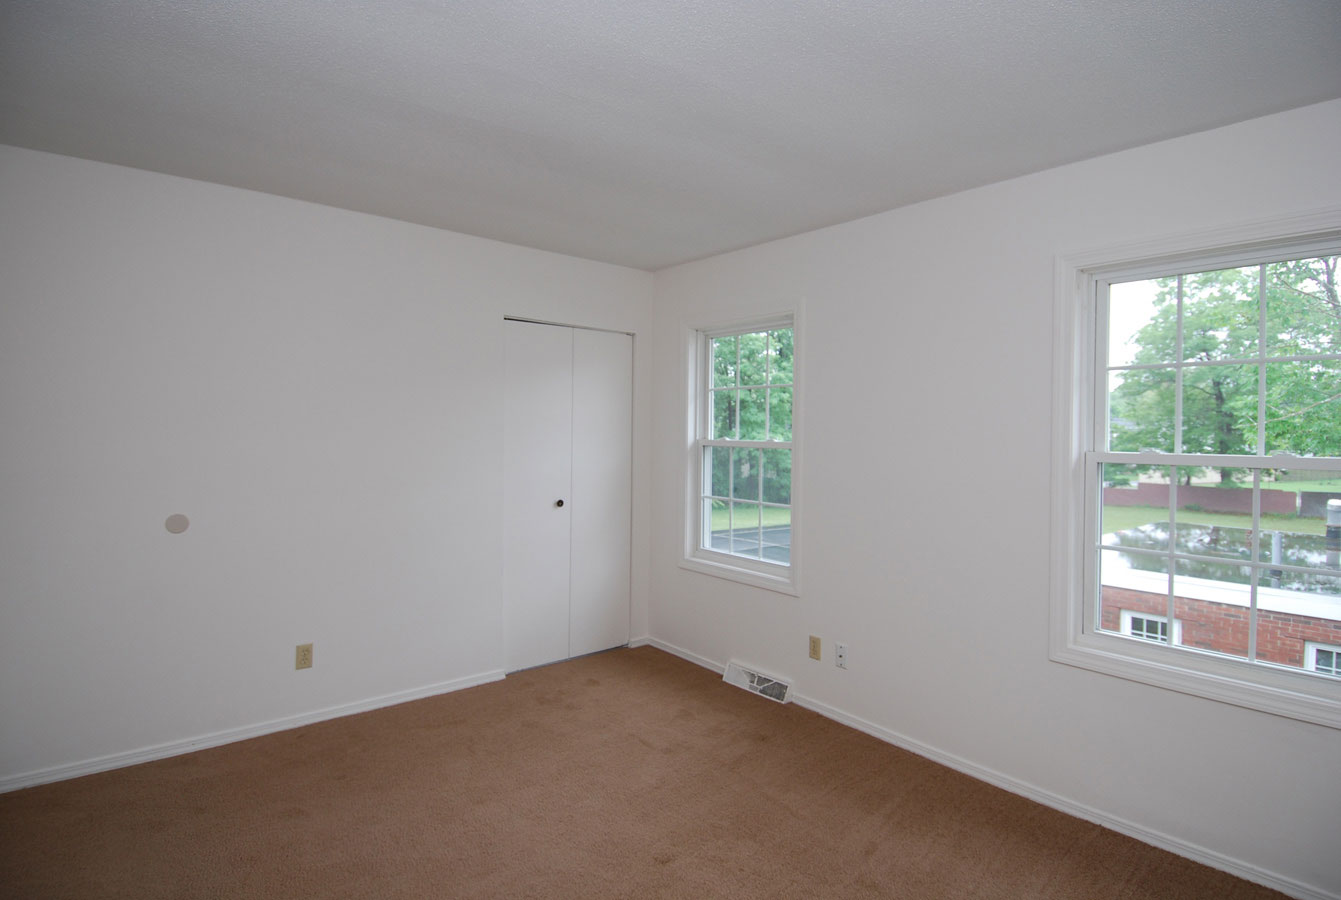 Bedroom - 2 Bedroom Townhouse, Wellington Terrace, Manchester NH